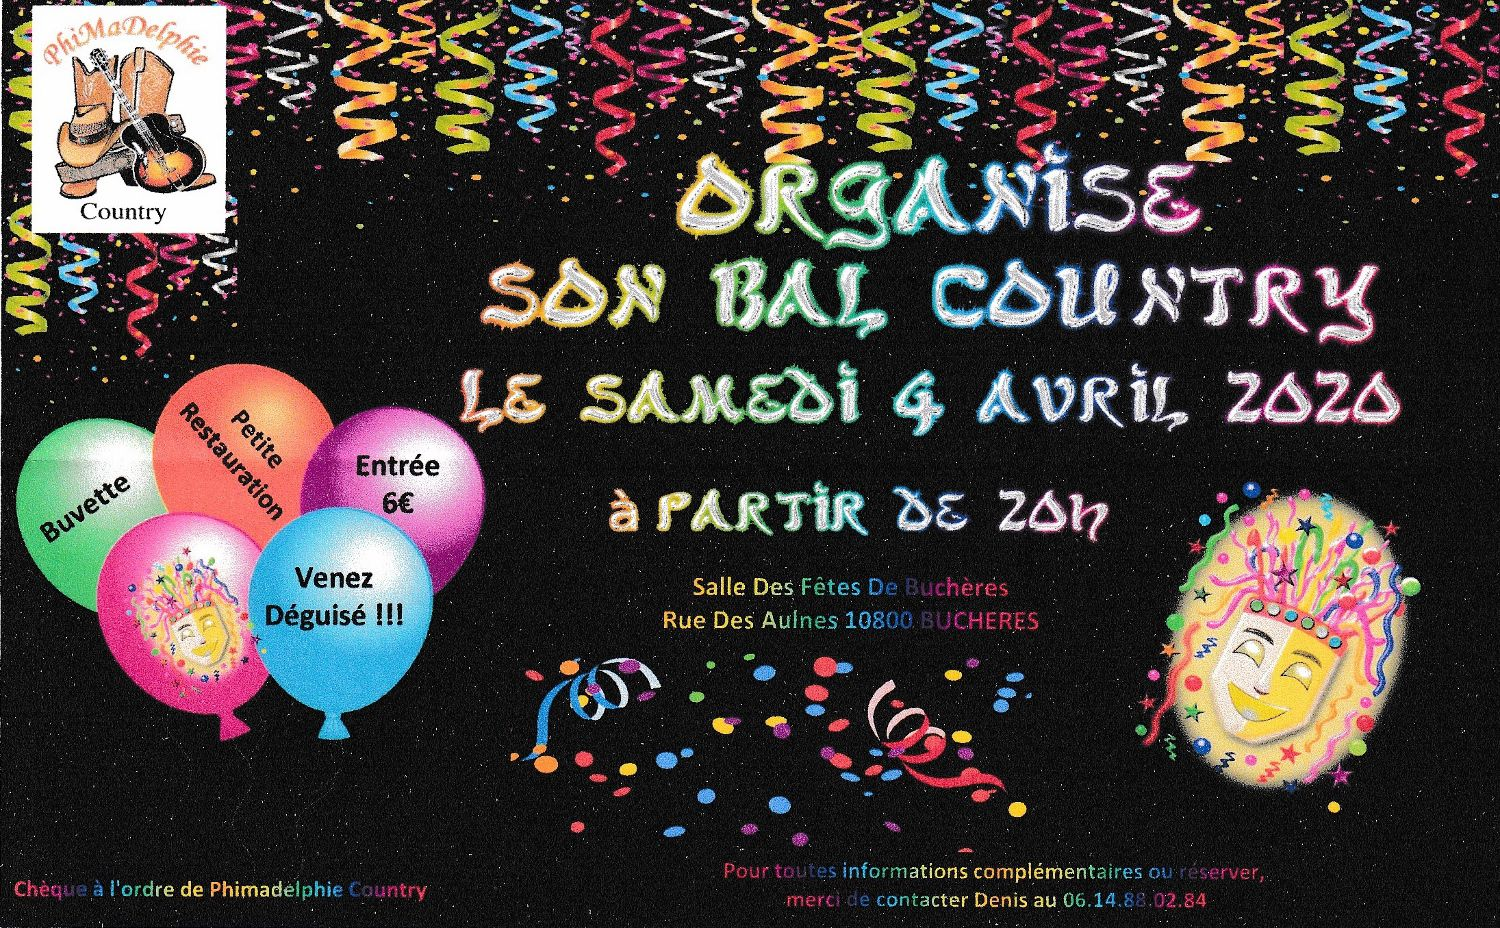 AFFICHE BUCHERES 4 AVRIL